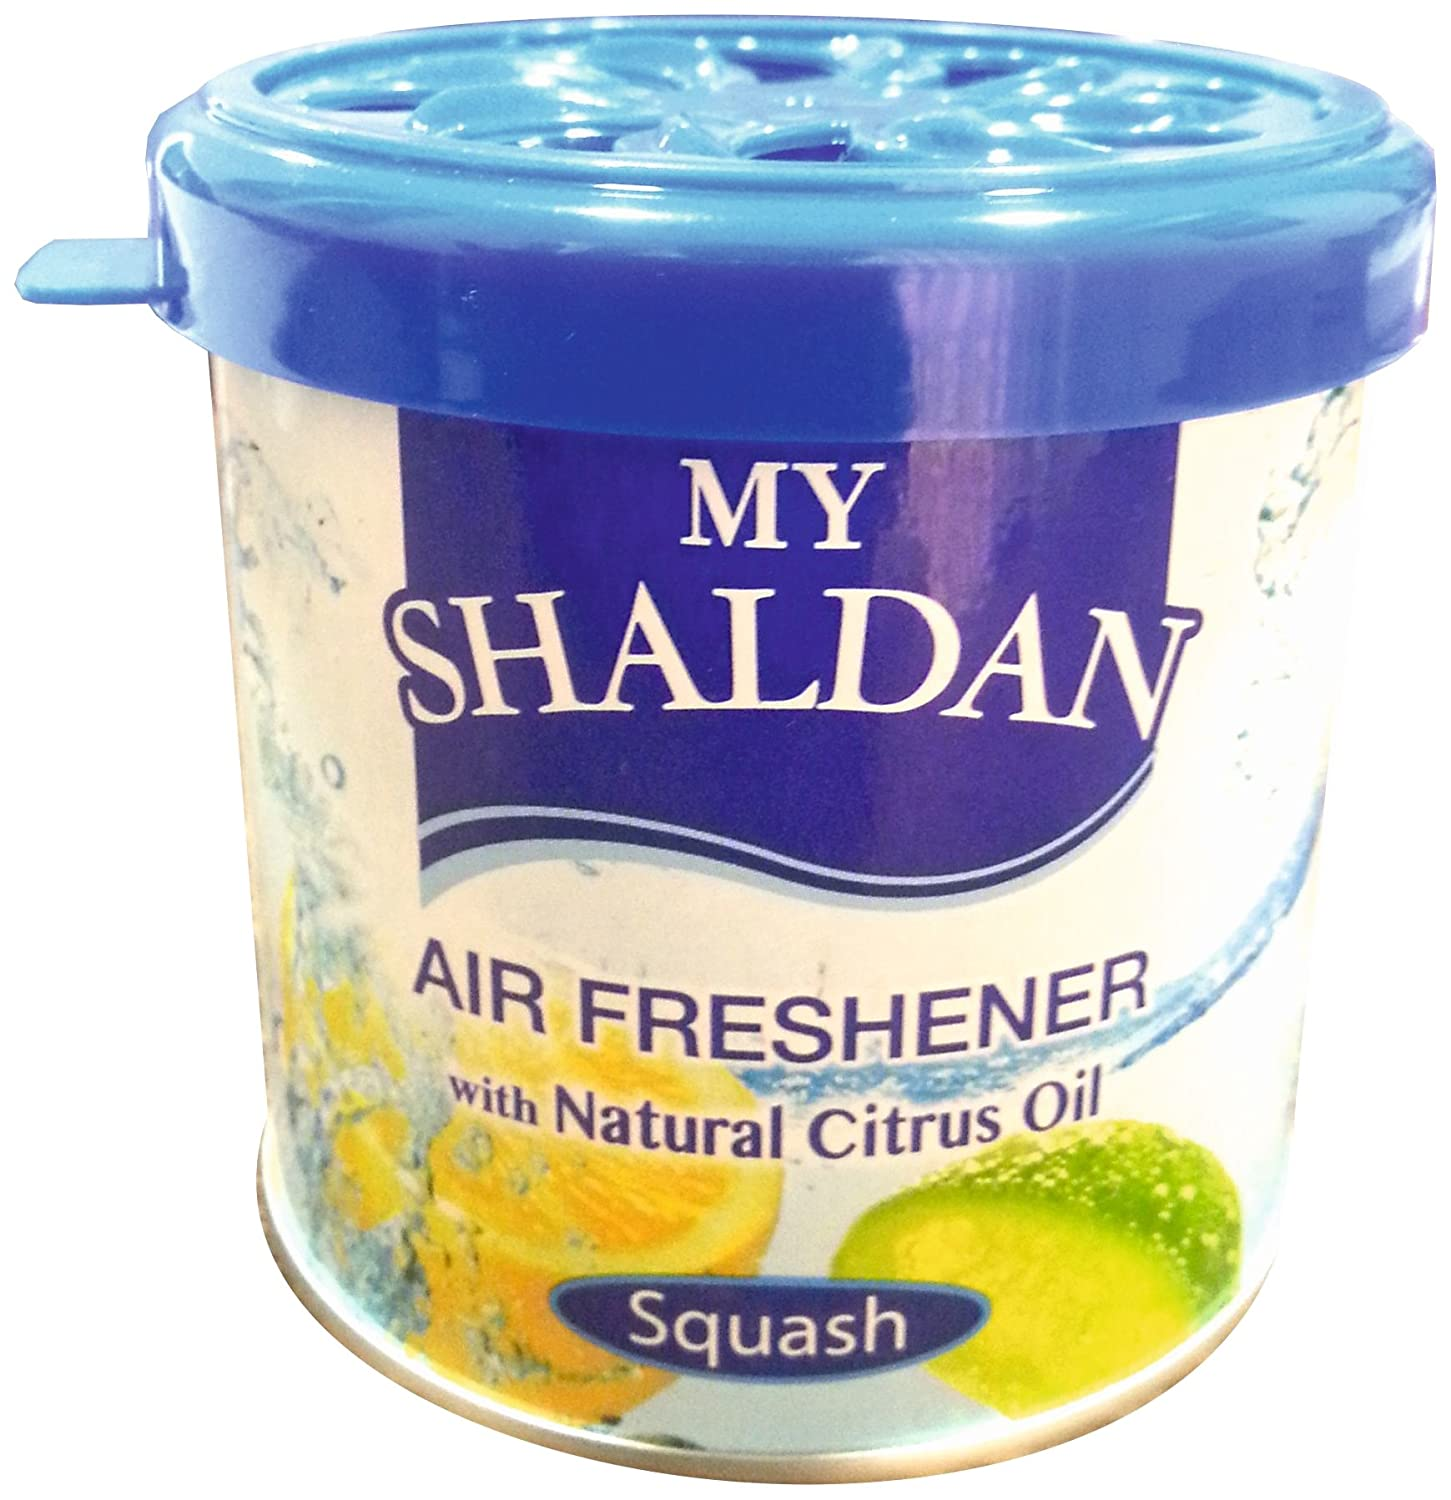 My Shaldan Squash Car Air Freshener